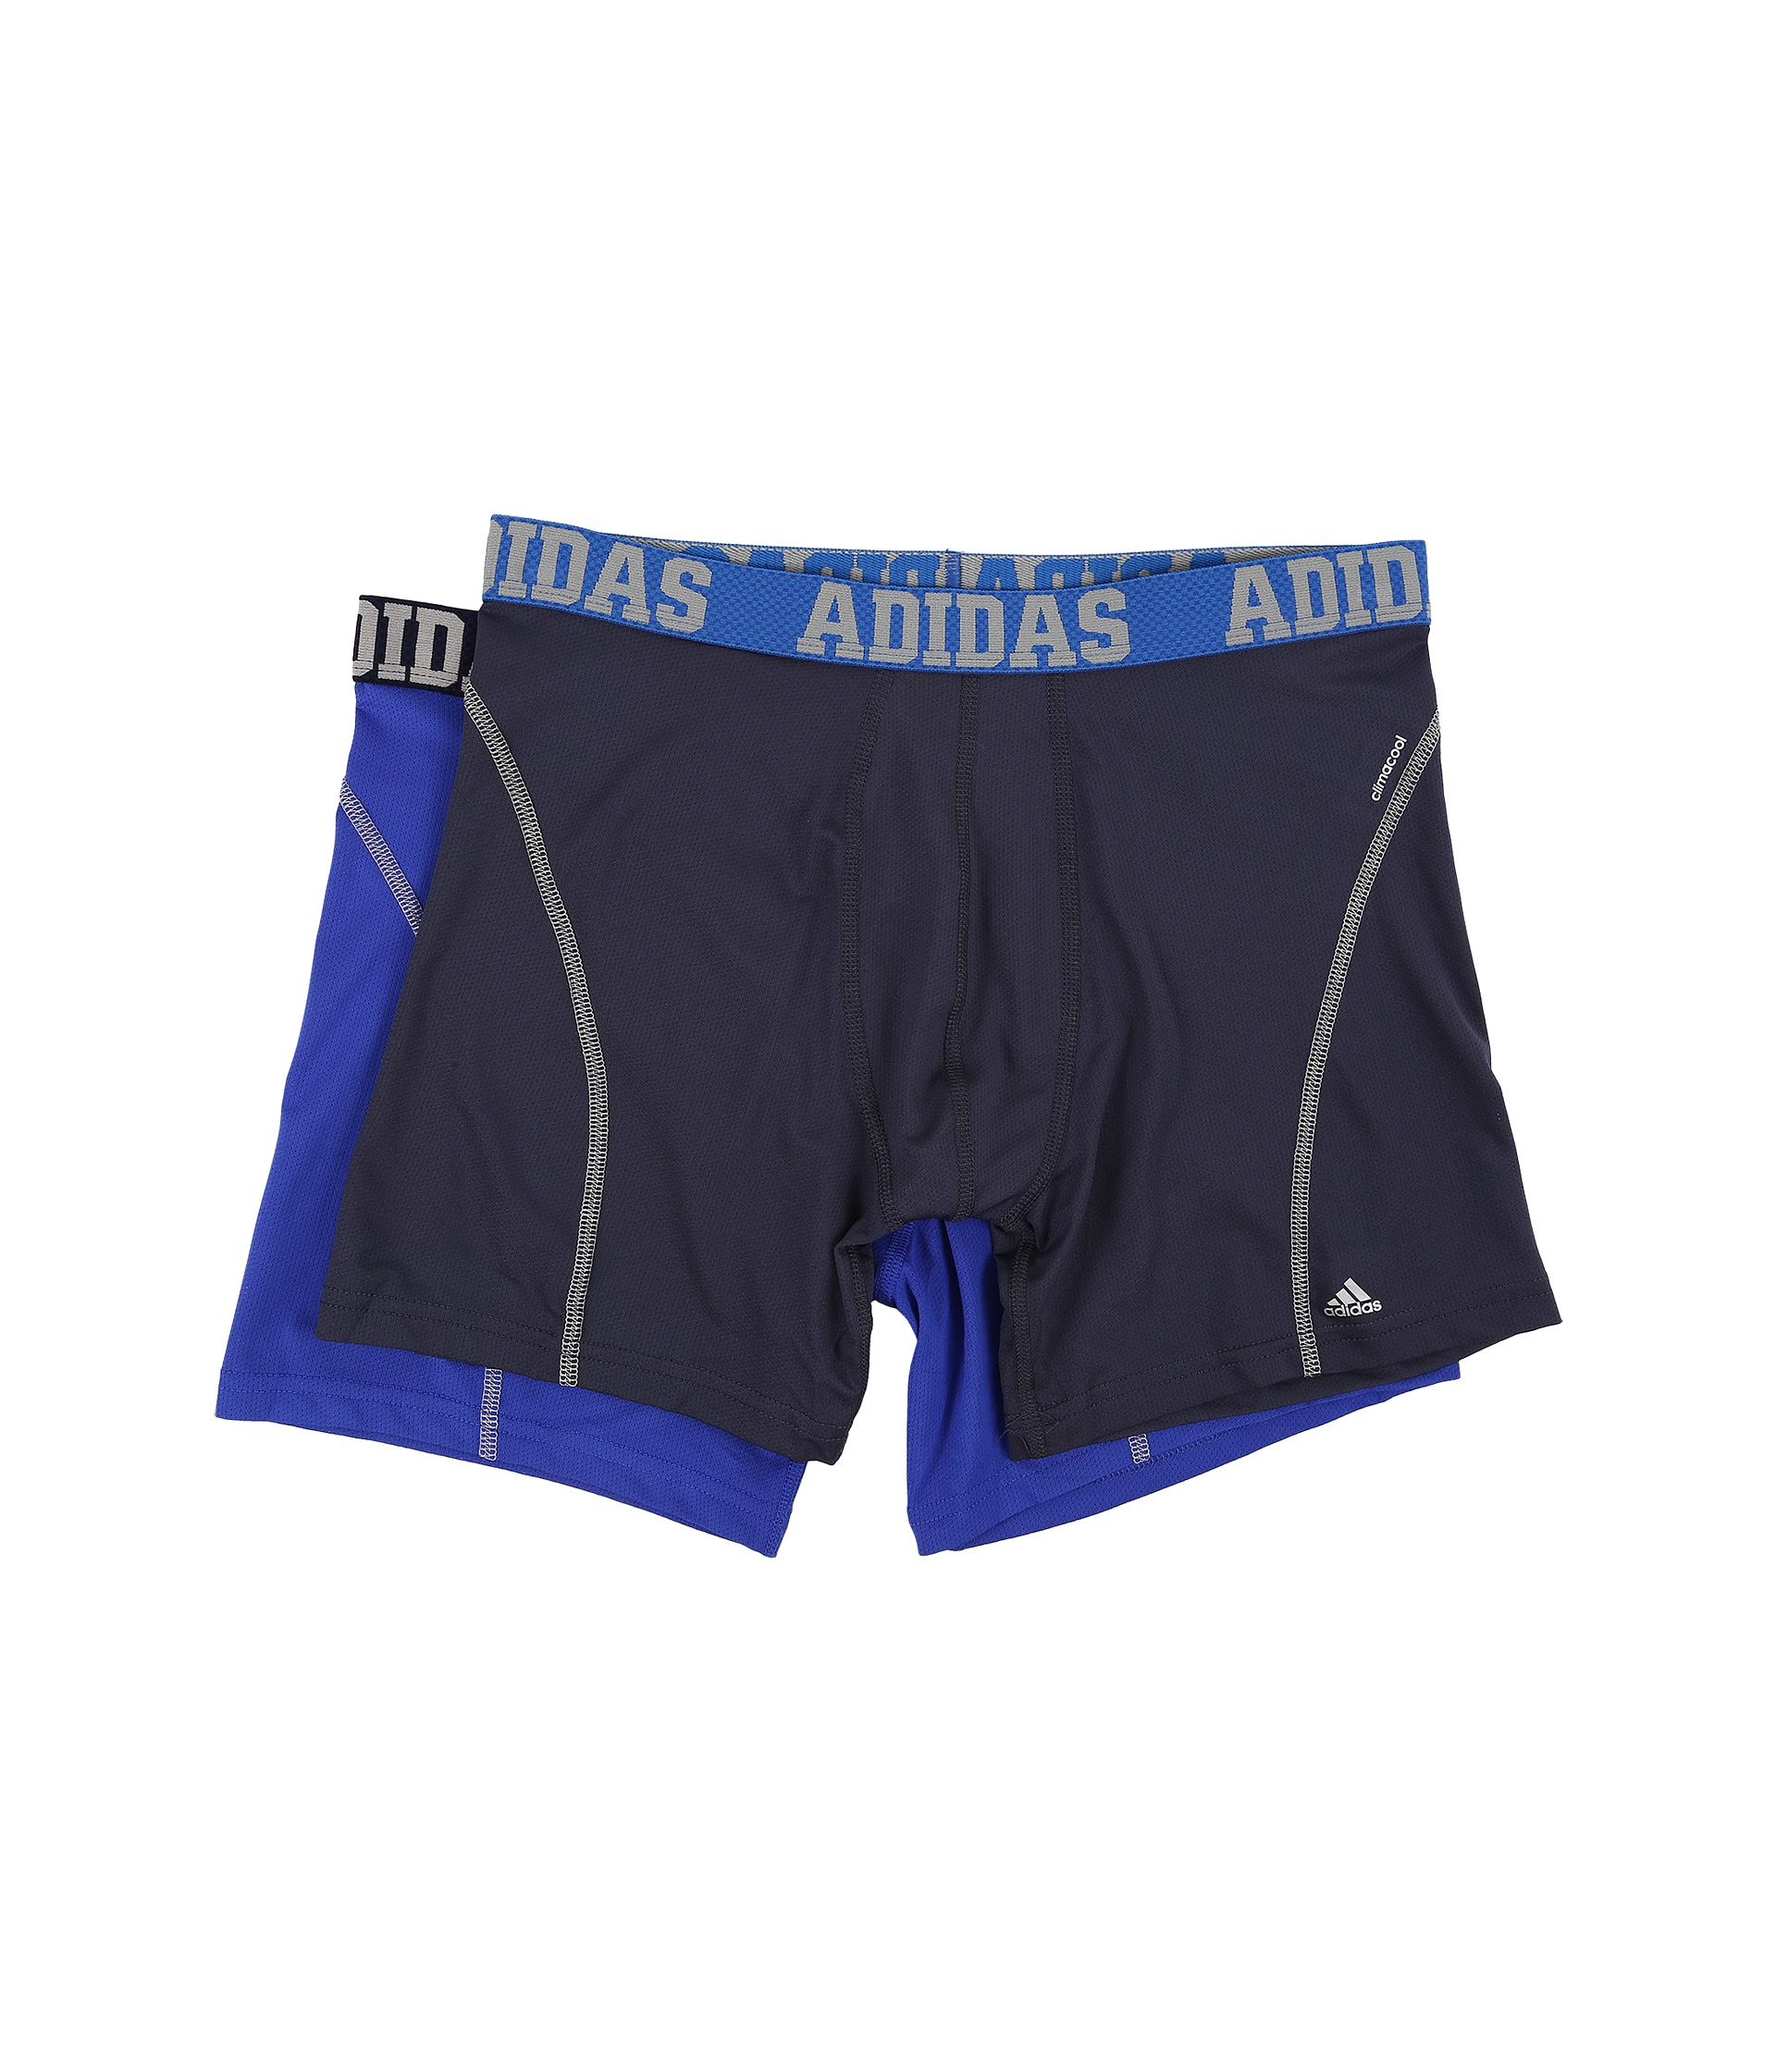 Adidas Low Rise Boxer Brief Hanes Low Rise Boxer Briefs